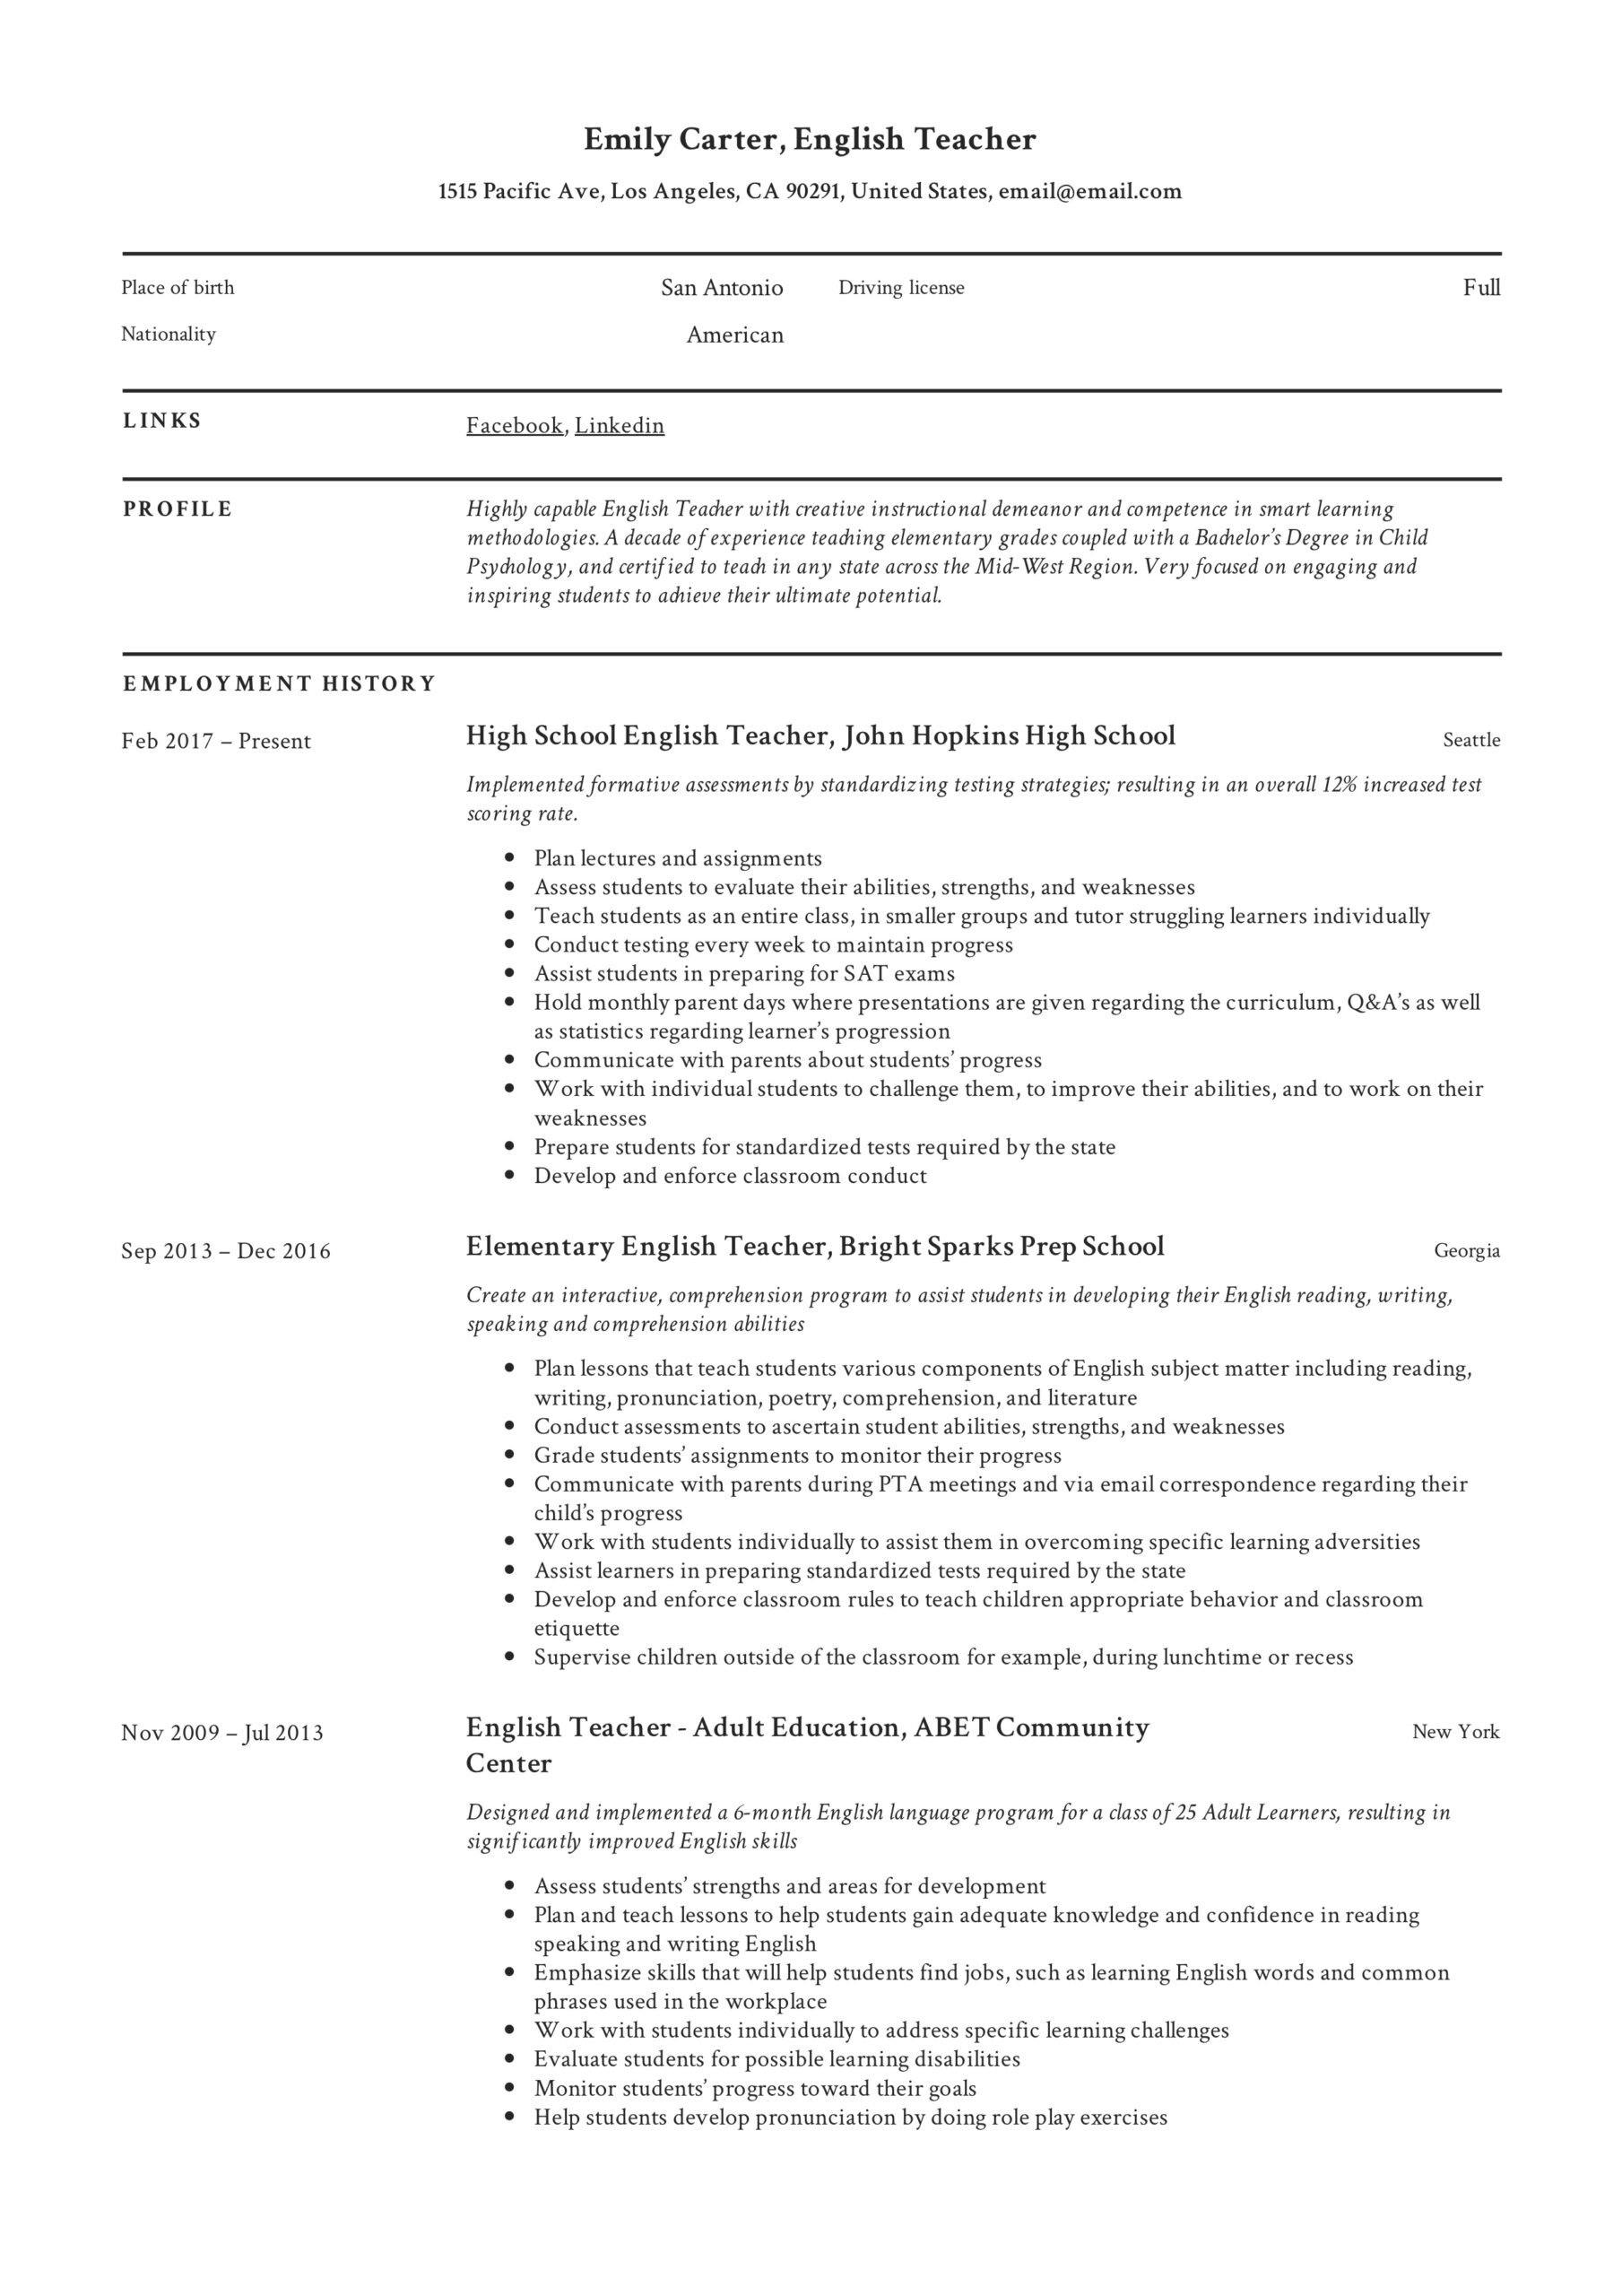 resume templates pdf word free downloads and guides professional writing samples template Resume Professional Resume Writing Samples